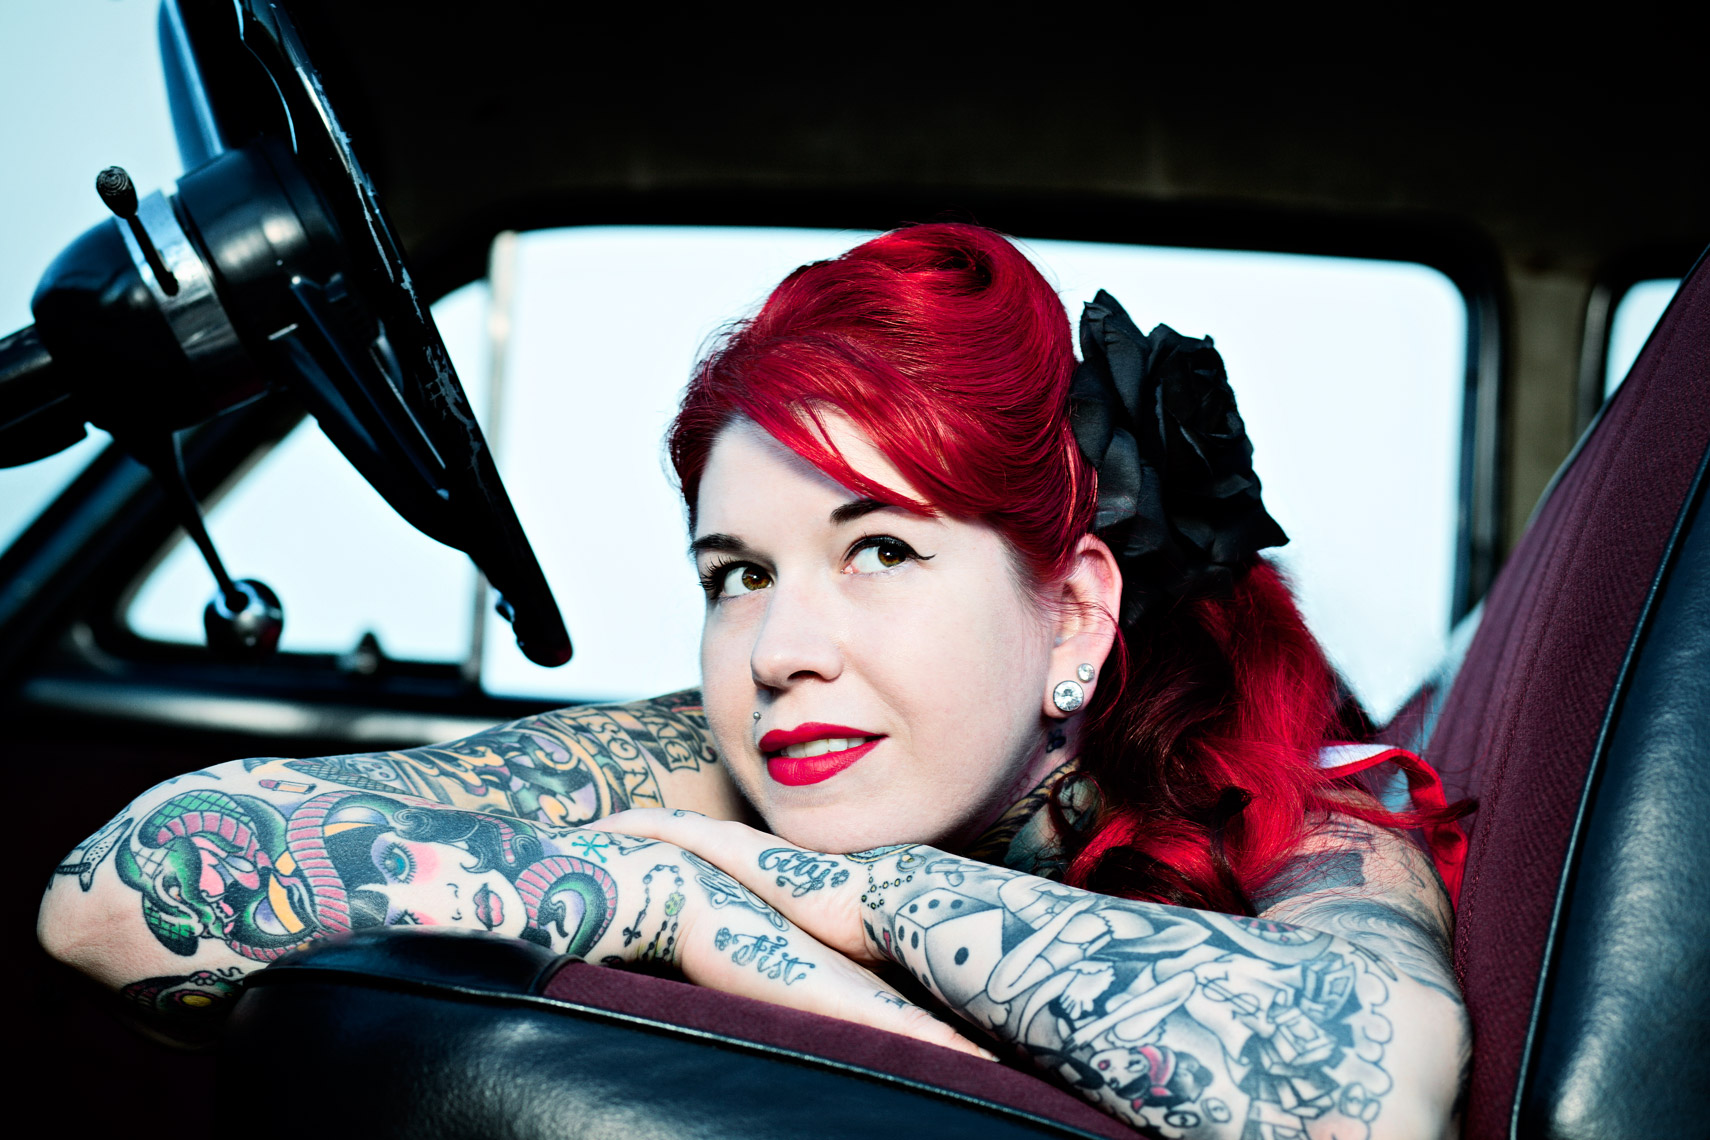 Photograph of heavily tattooed woman in truck, Atlanta